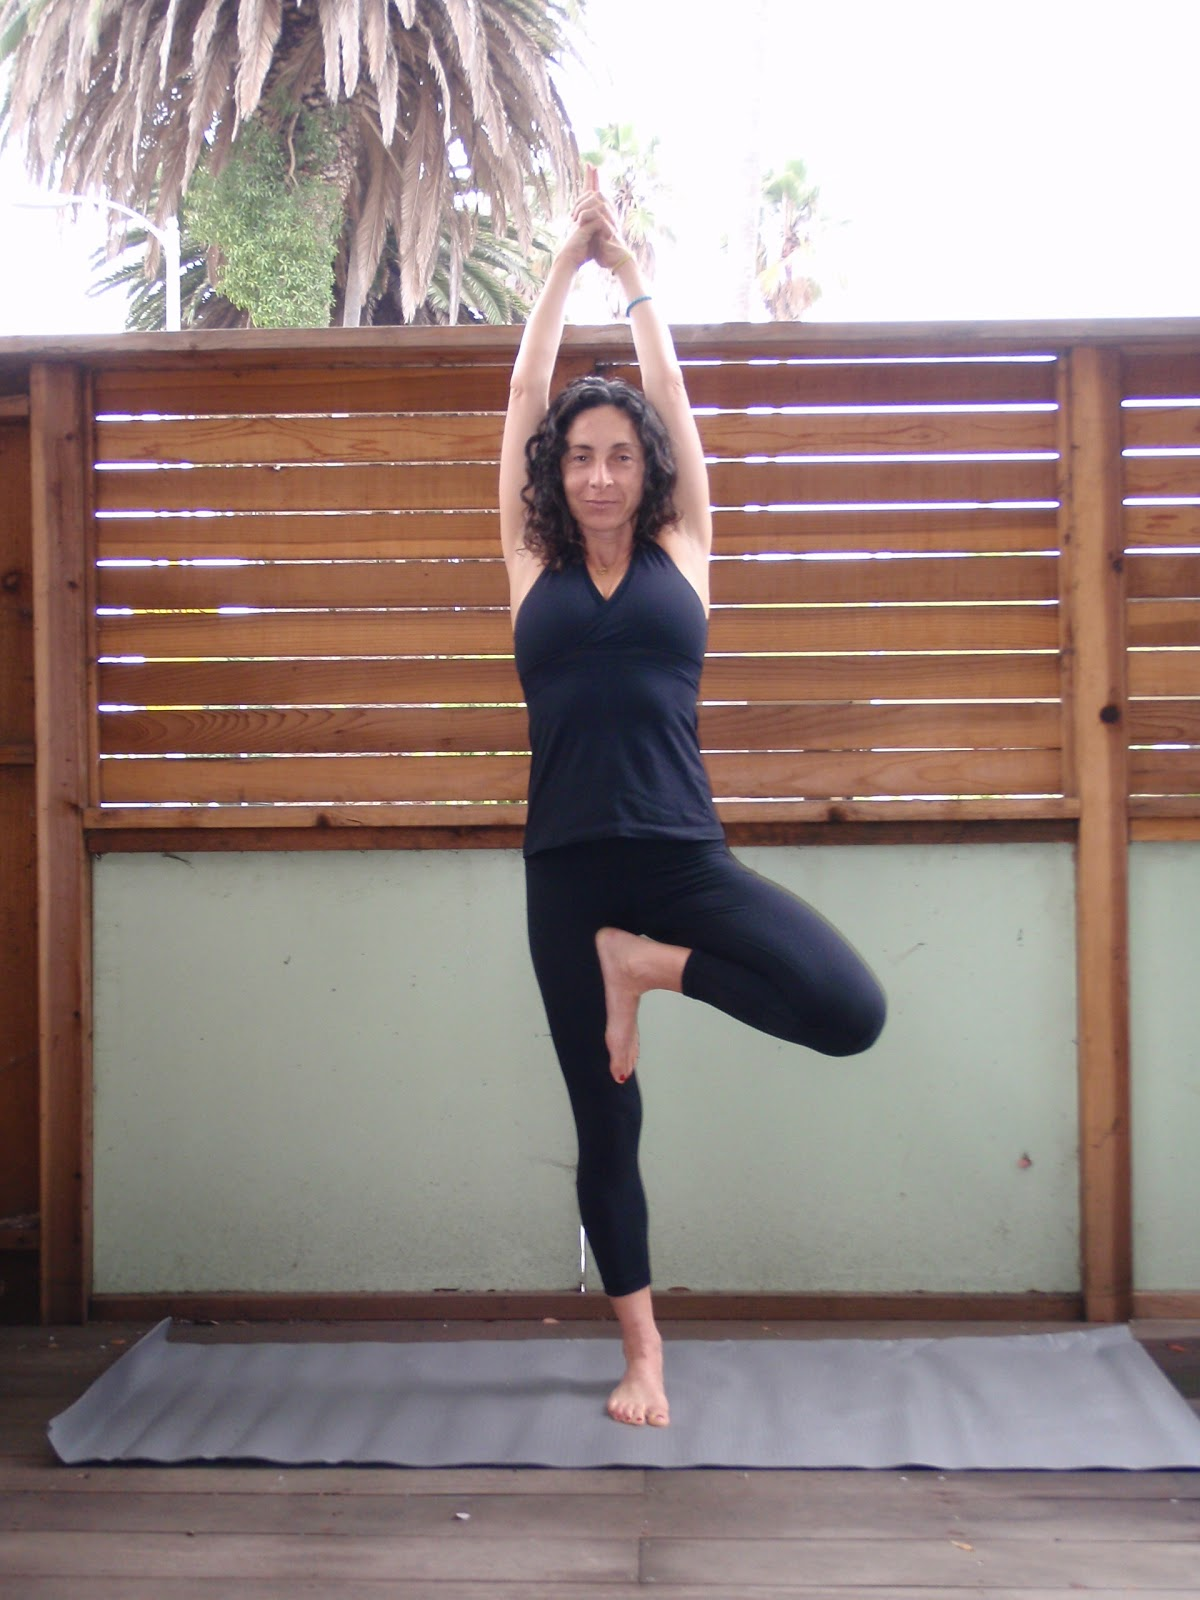 Tree pose arm variations